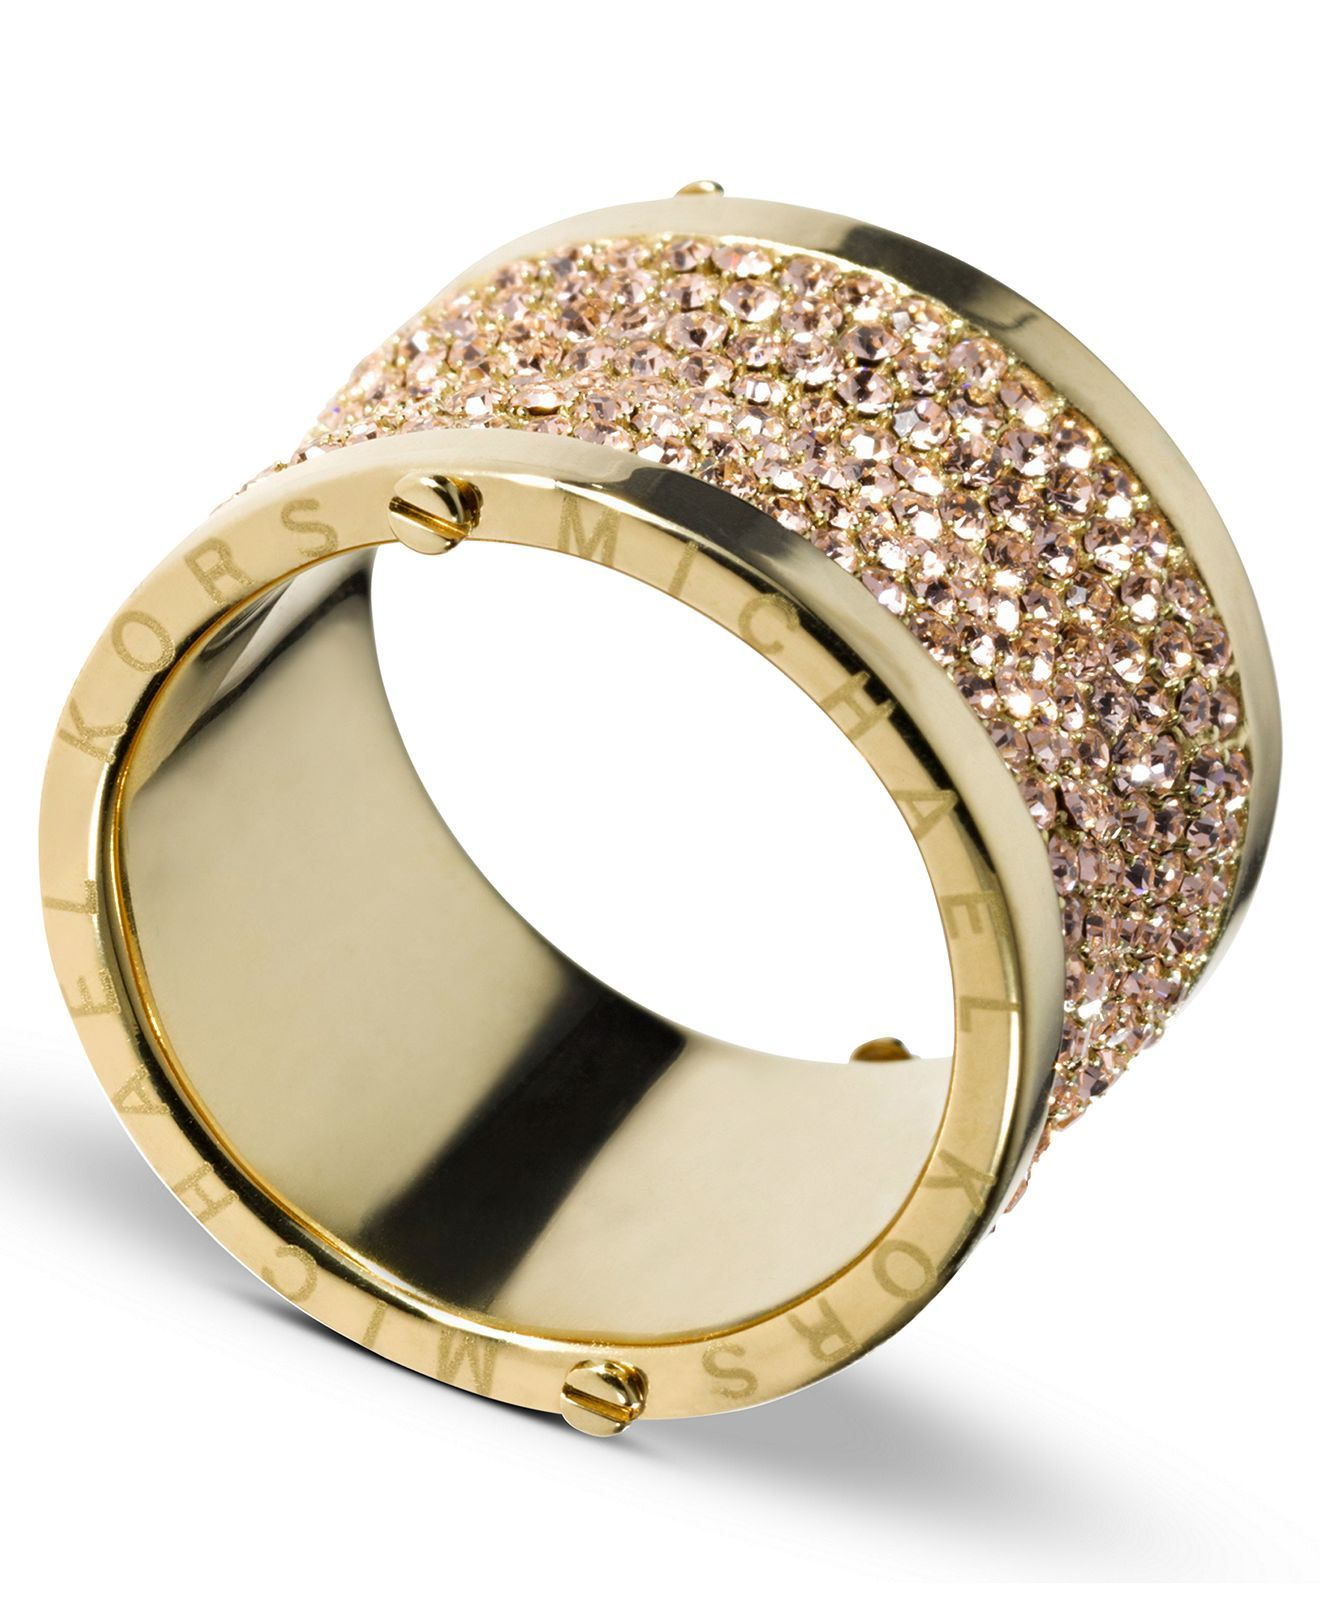 Michael kors ring gold tone pave barrel ring fashion for Macy s jewelry clearance